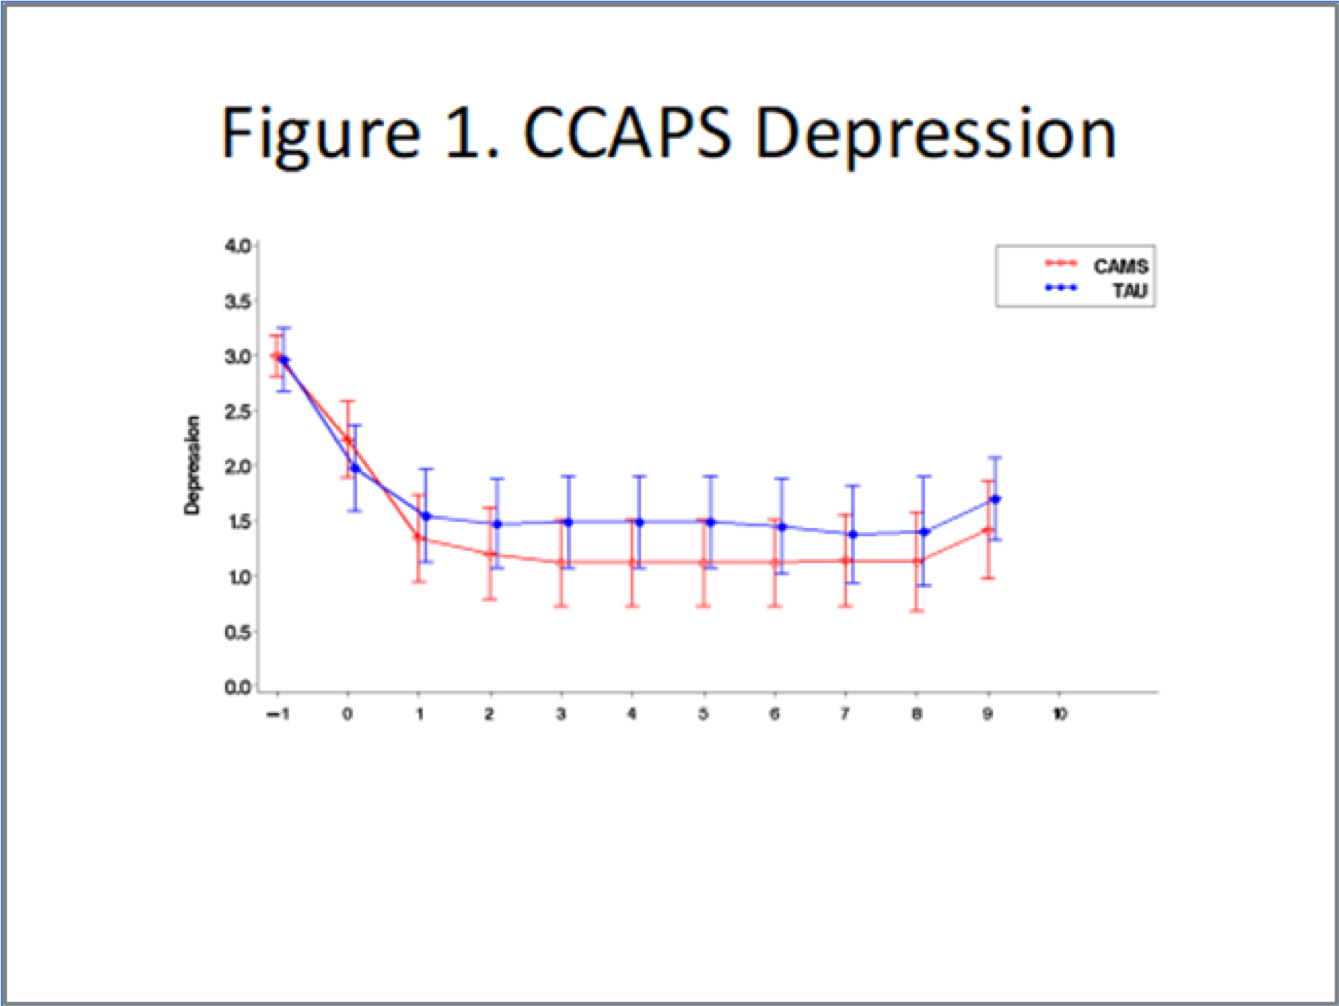 Figure 1. CCAPS Depression; Full description appears after image.